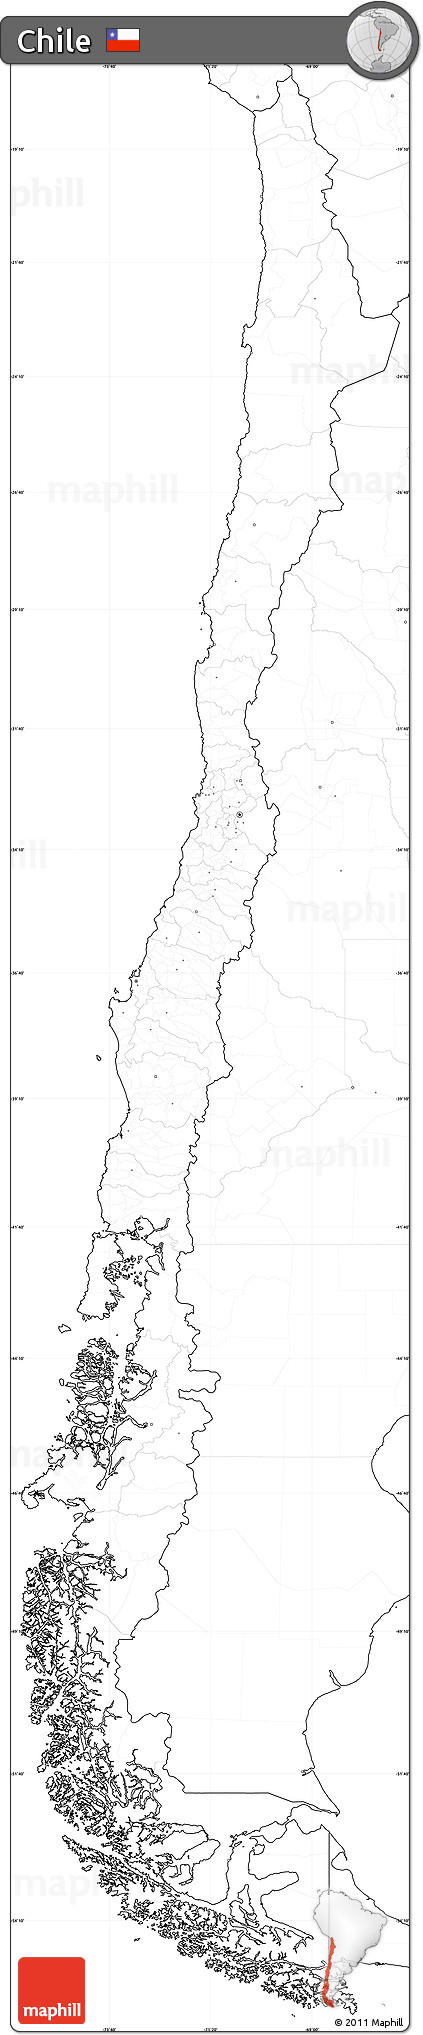 Free Blank Simple Map Of Chile, No Labels - Free Printable Map Of Chile